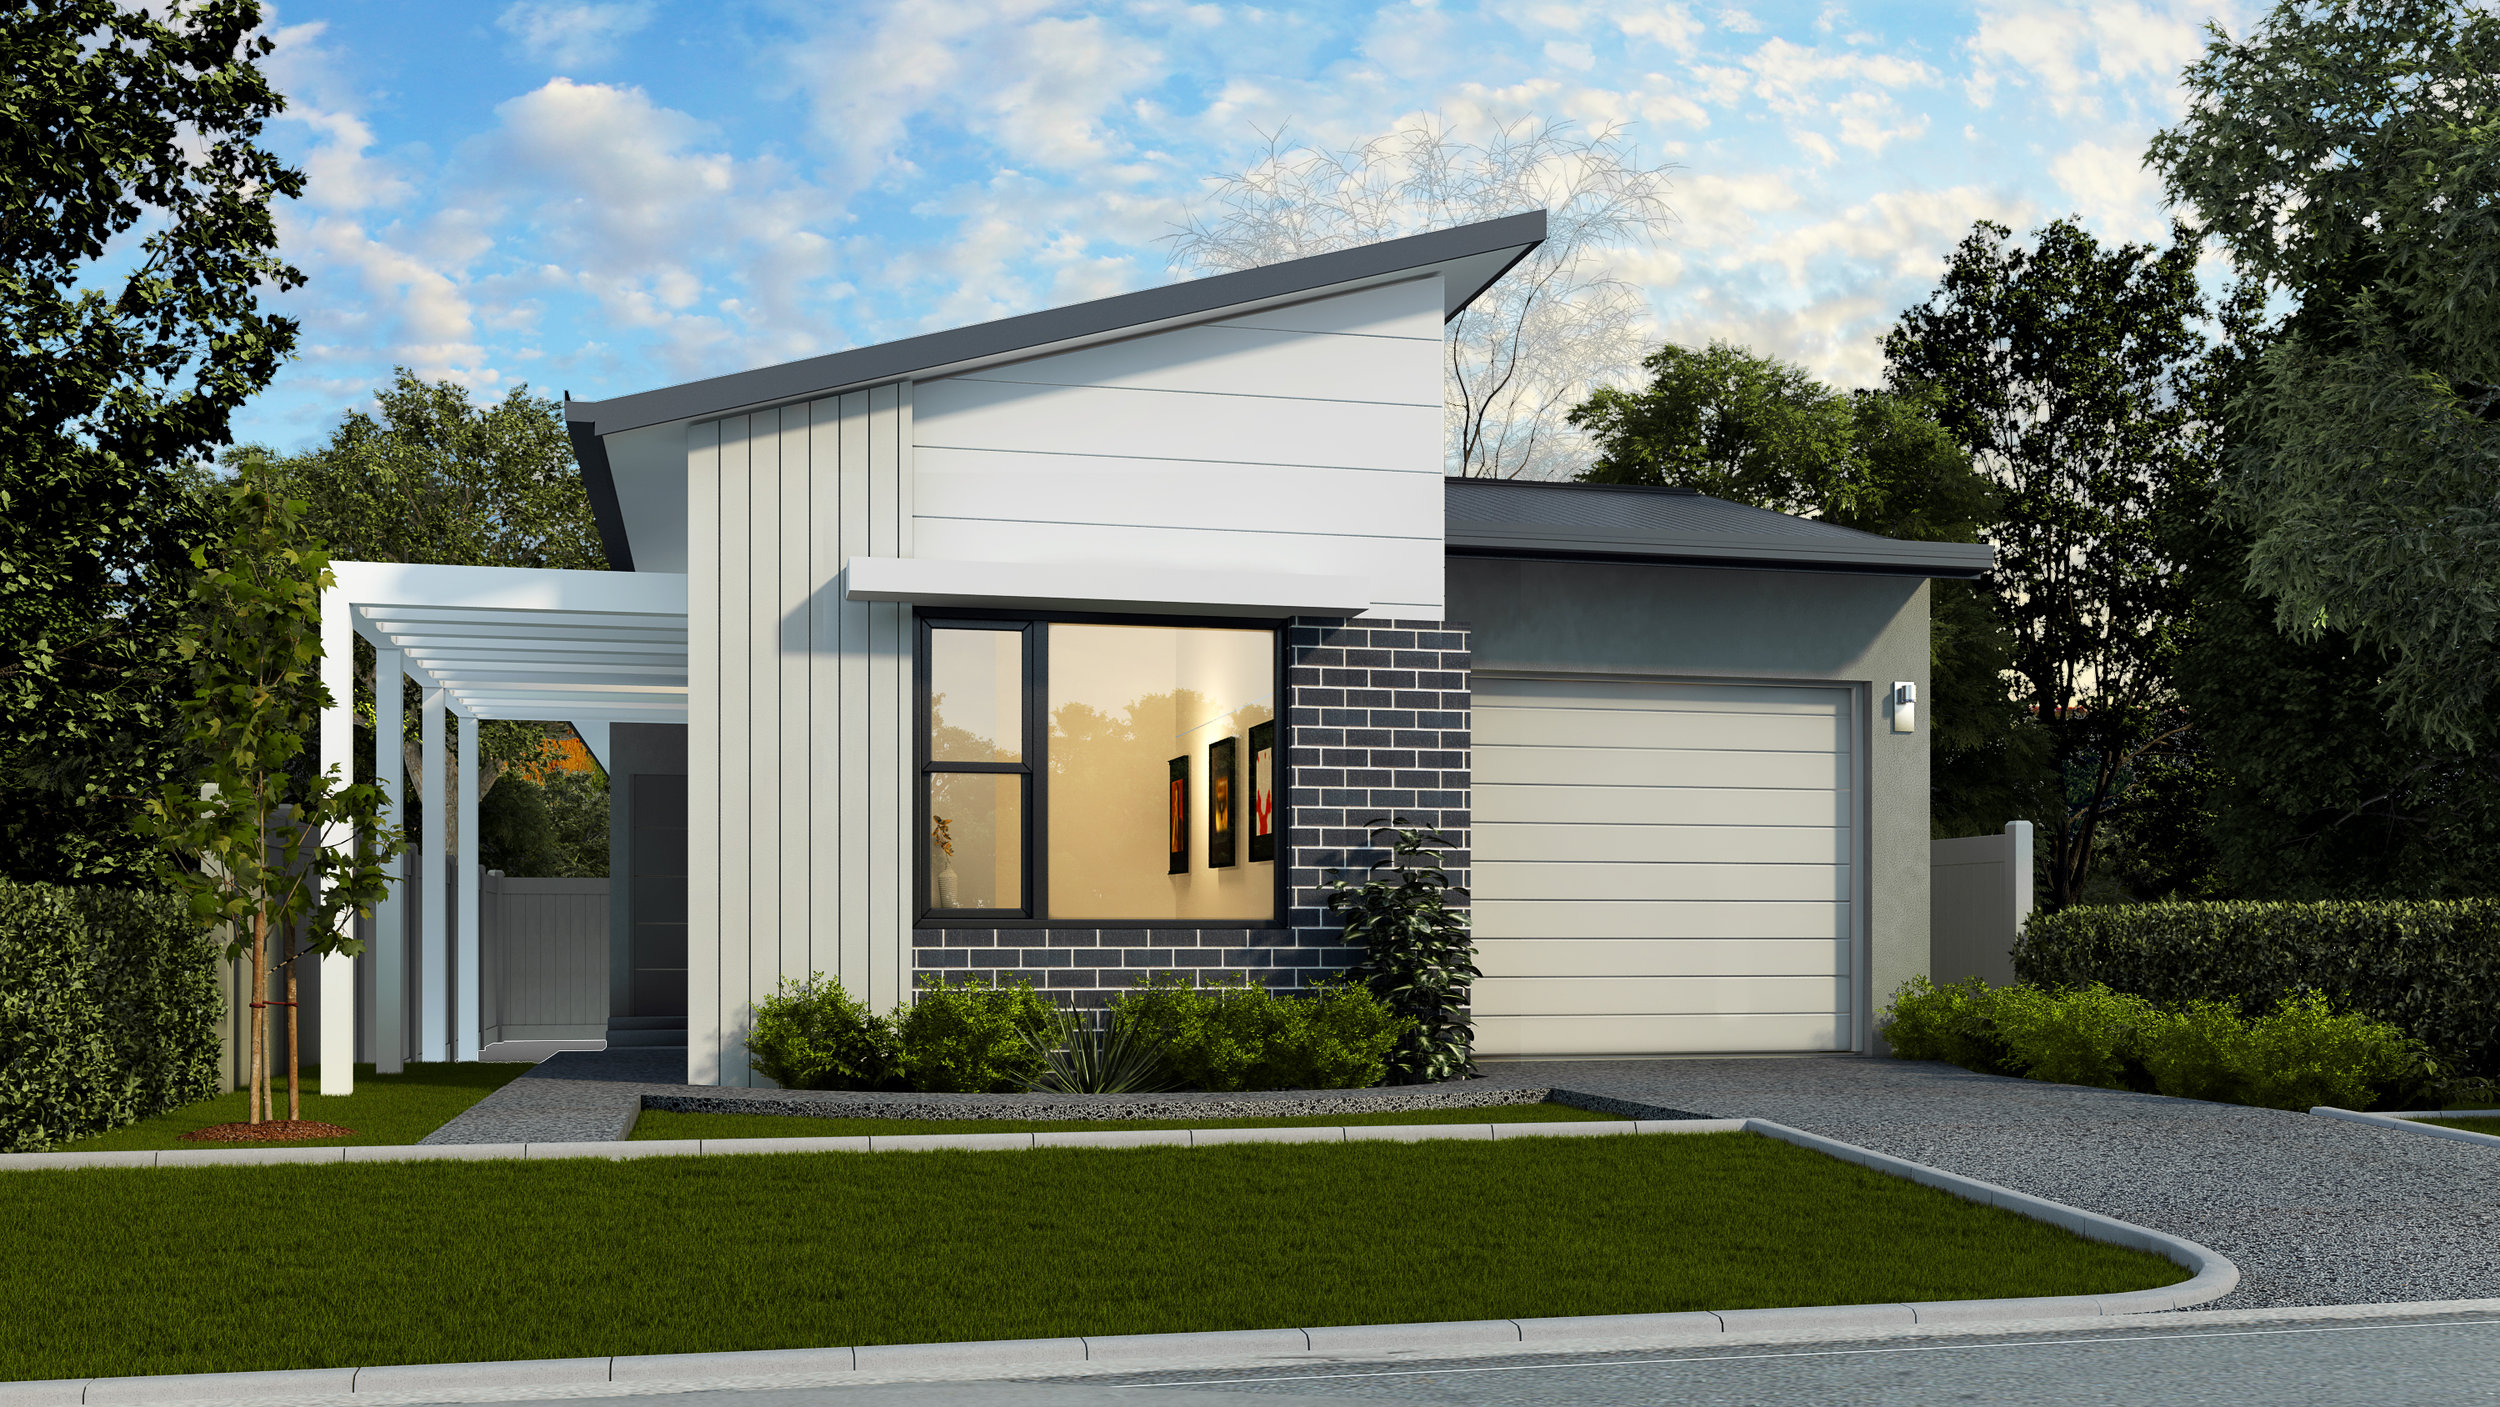 The Lexicon Cino - 2 Bed | 2 Bath | 2 Car Tandem Garage8.5m Traditional Lots